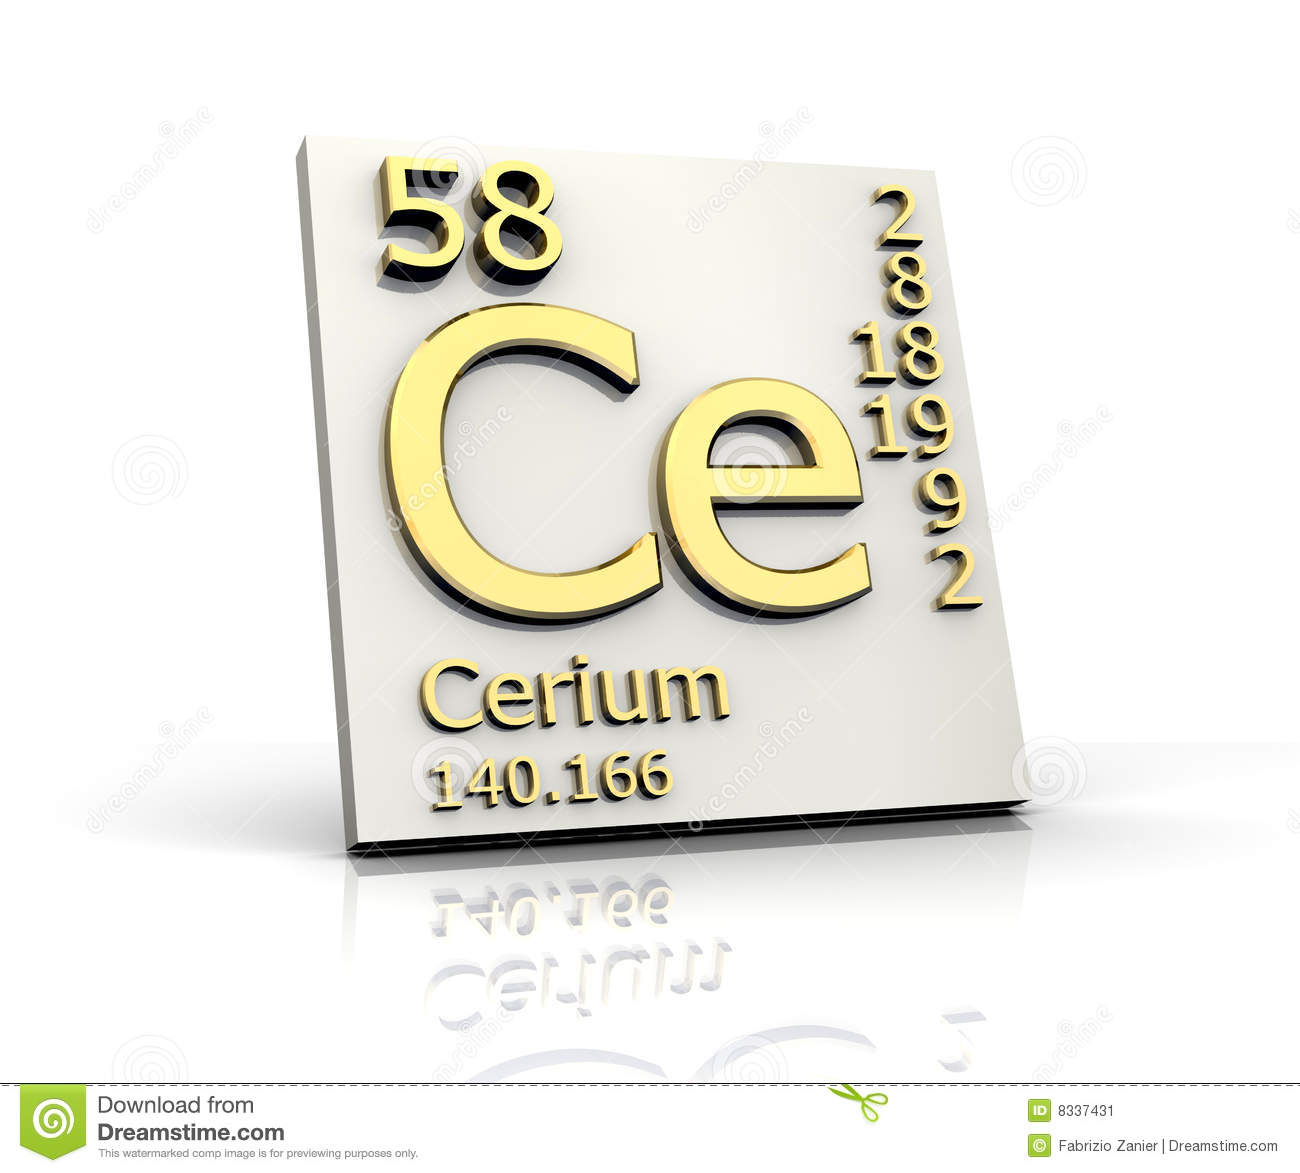 Thulium periodic table choice image periodic table images periodic table thulium images periodic table images thulium periodic table thulium periodic table thulium period thulium gamestrikefo Gallery